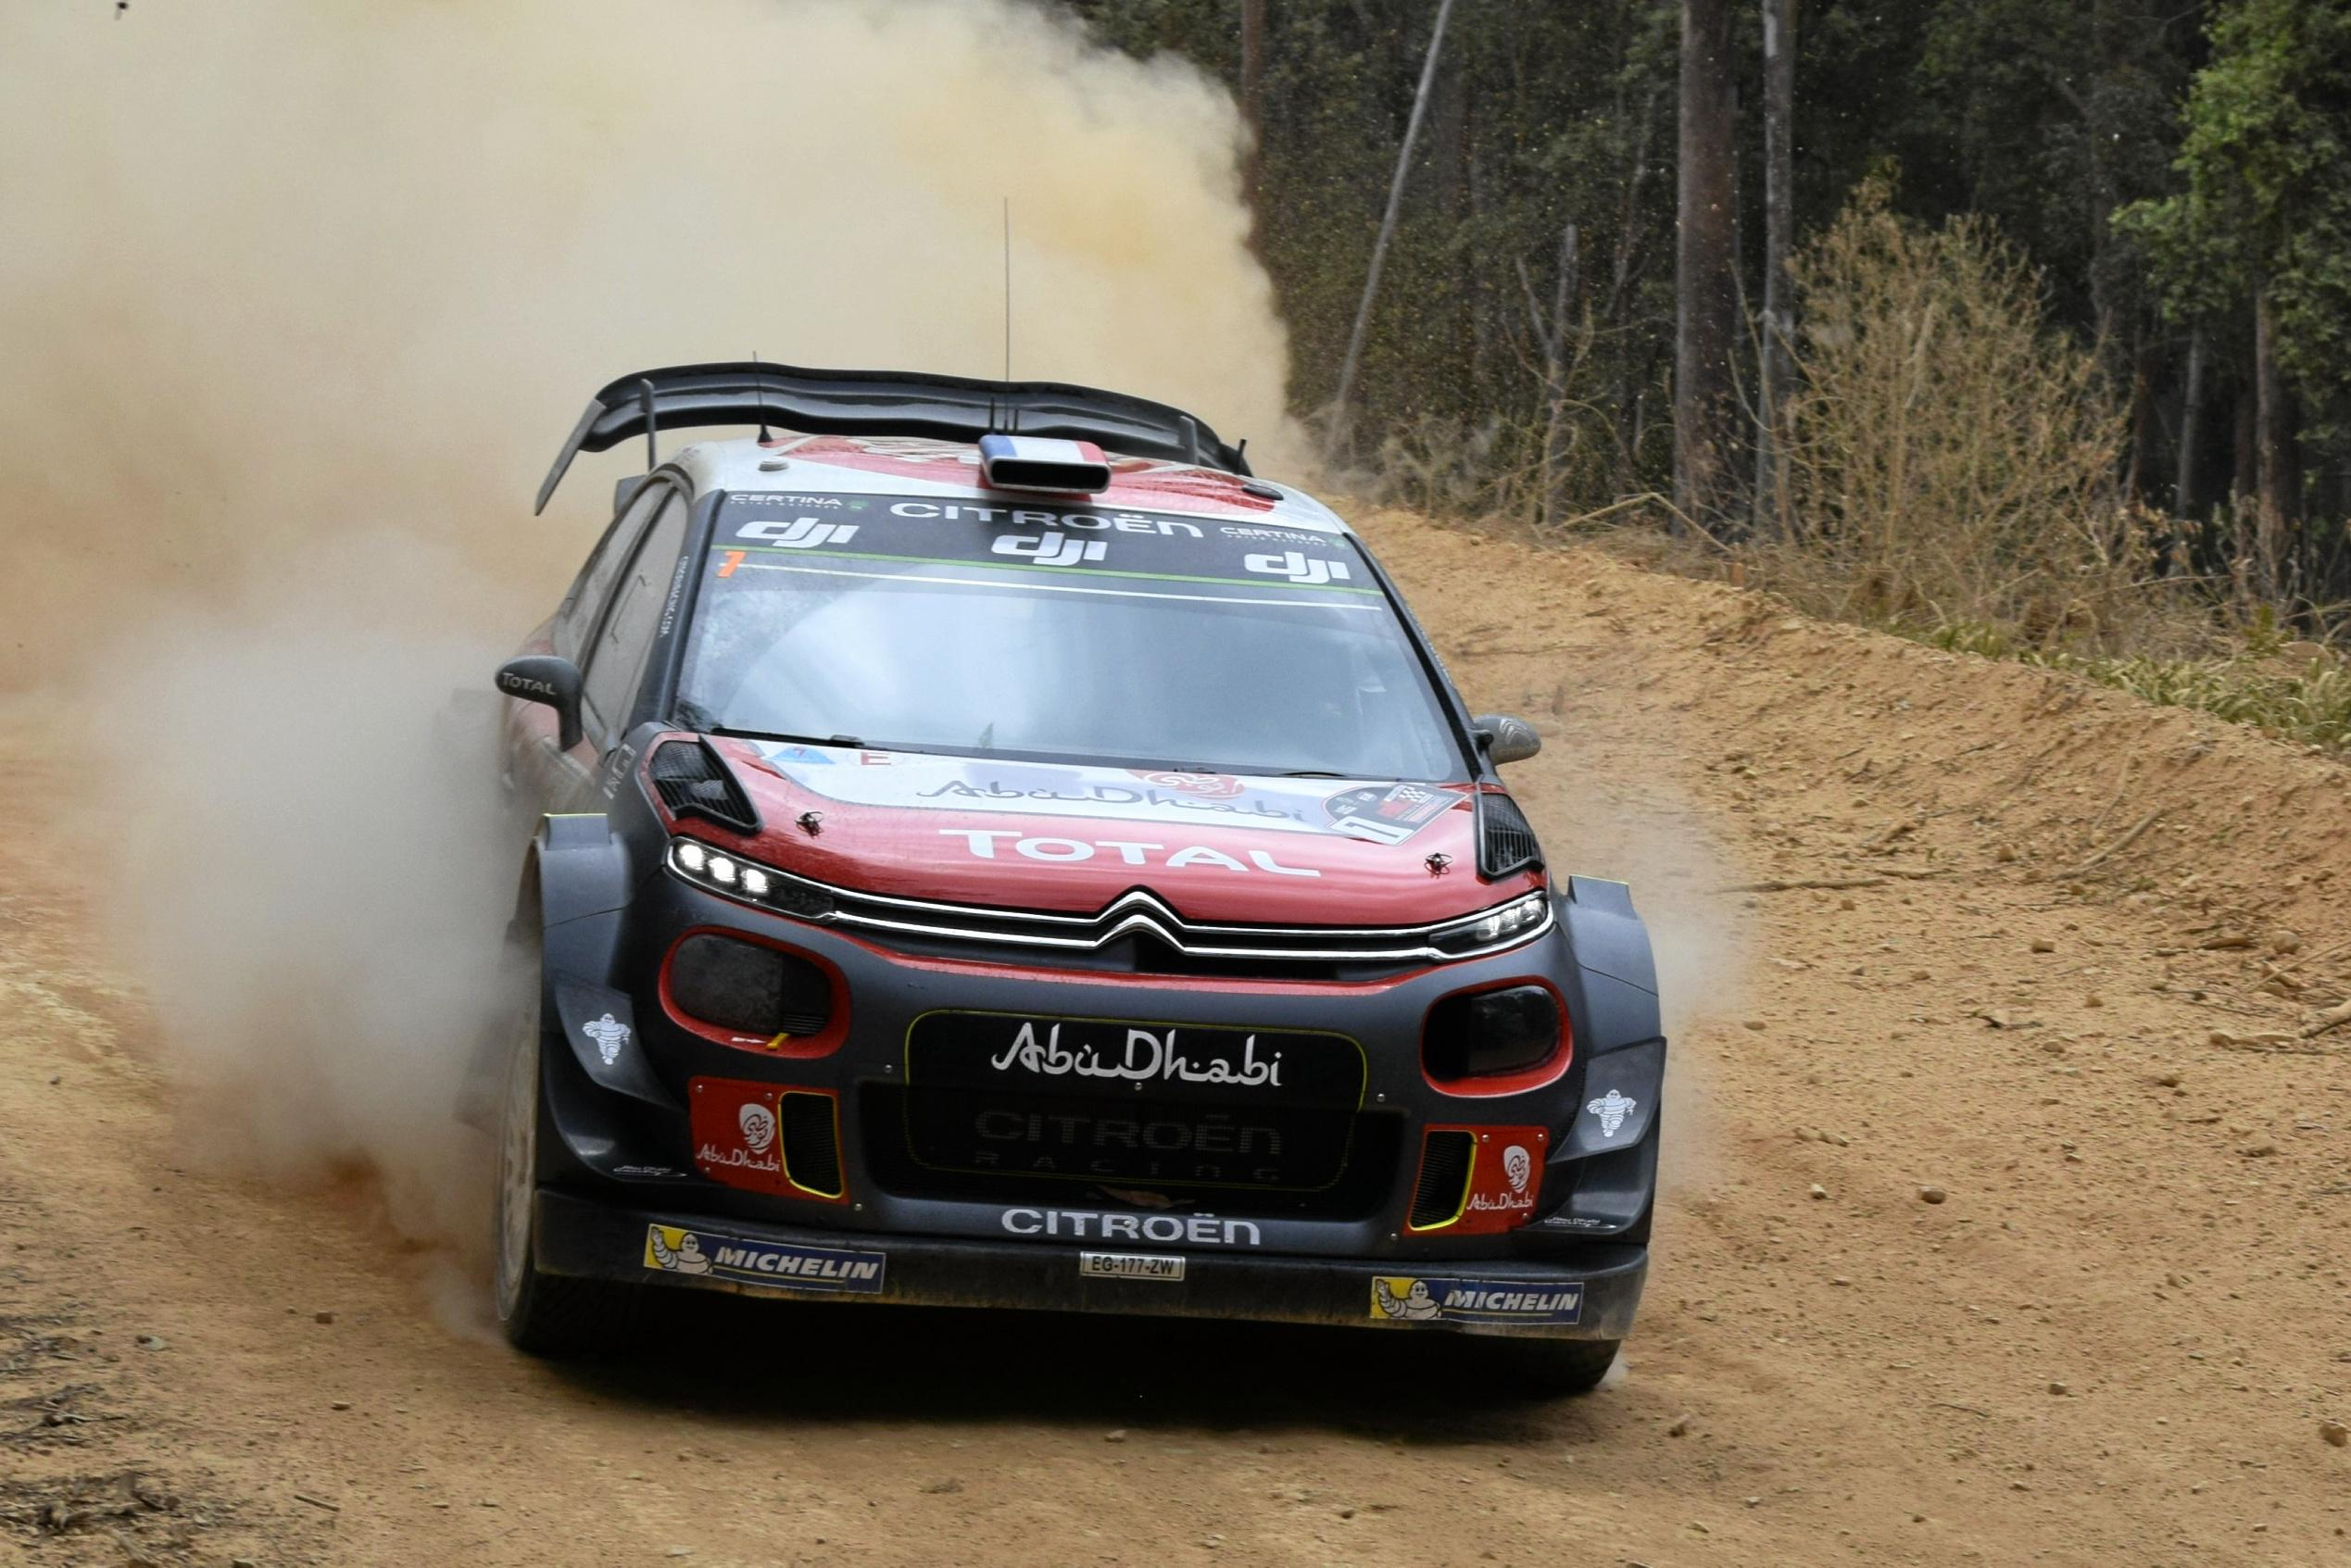 Frenchman Stephane Lefebvre behind the wheel of his Citroen C3 during the second run through the Pilbara stage on the opening day of the 2017 Kennards Hire Rally Australia. Moments after this he was pulled over on Bucca Rd for speeding.